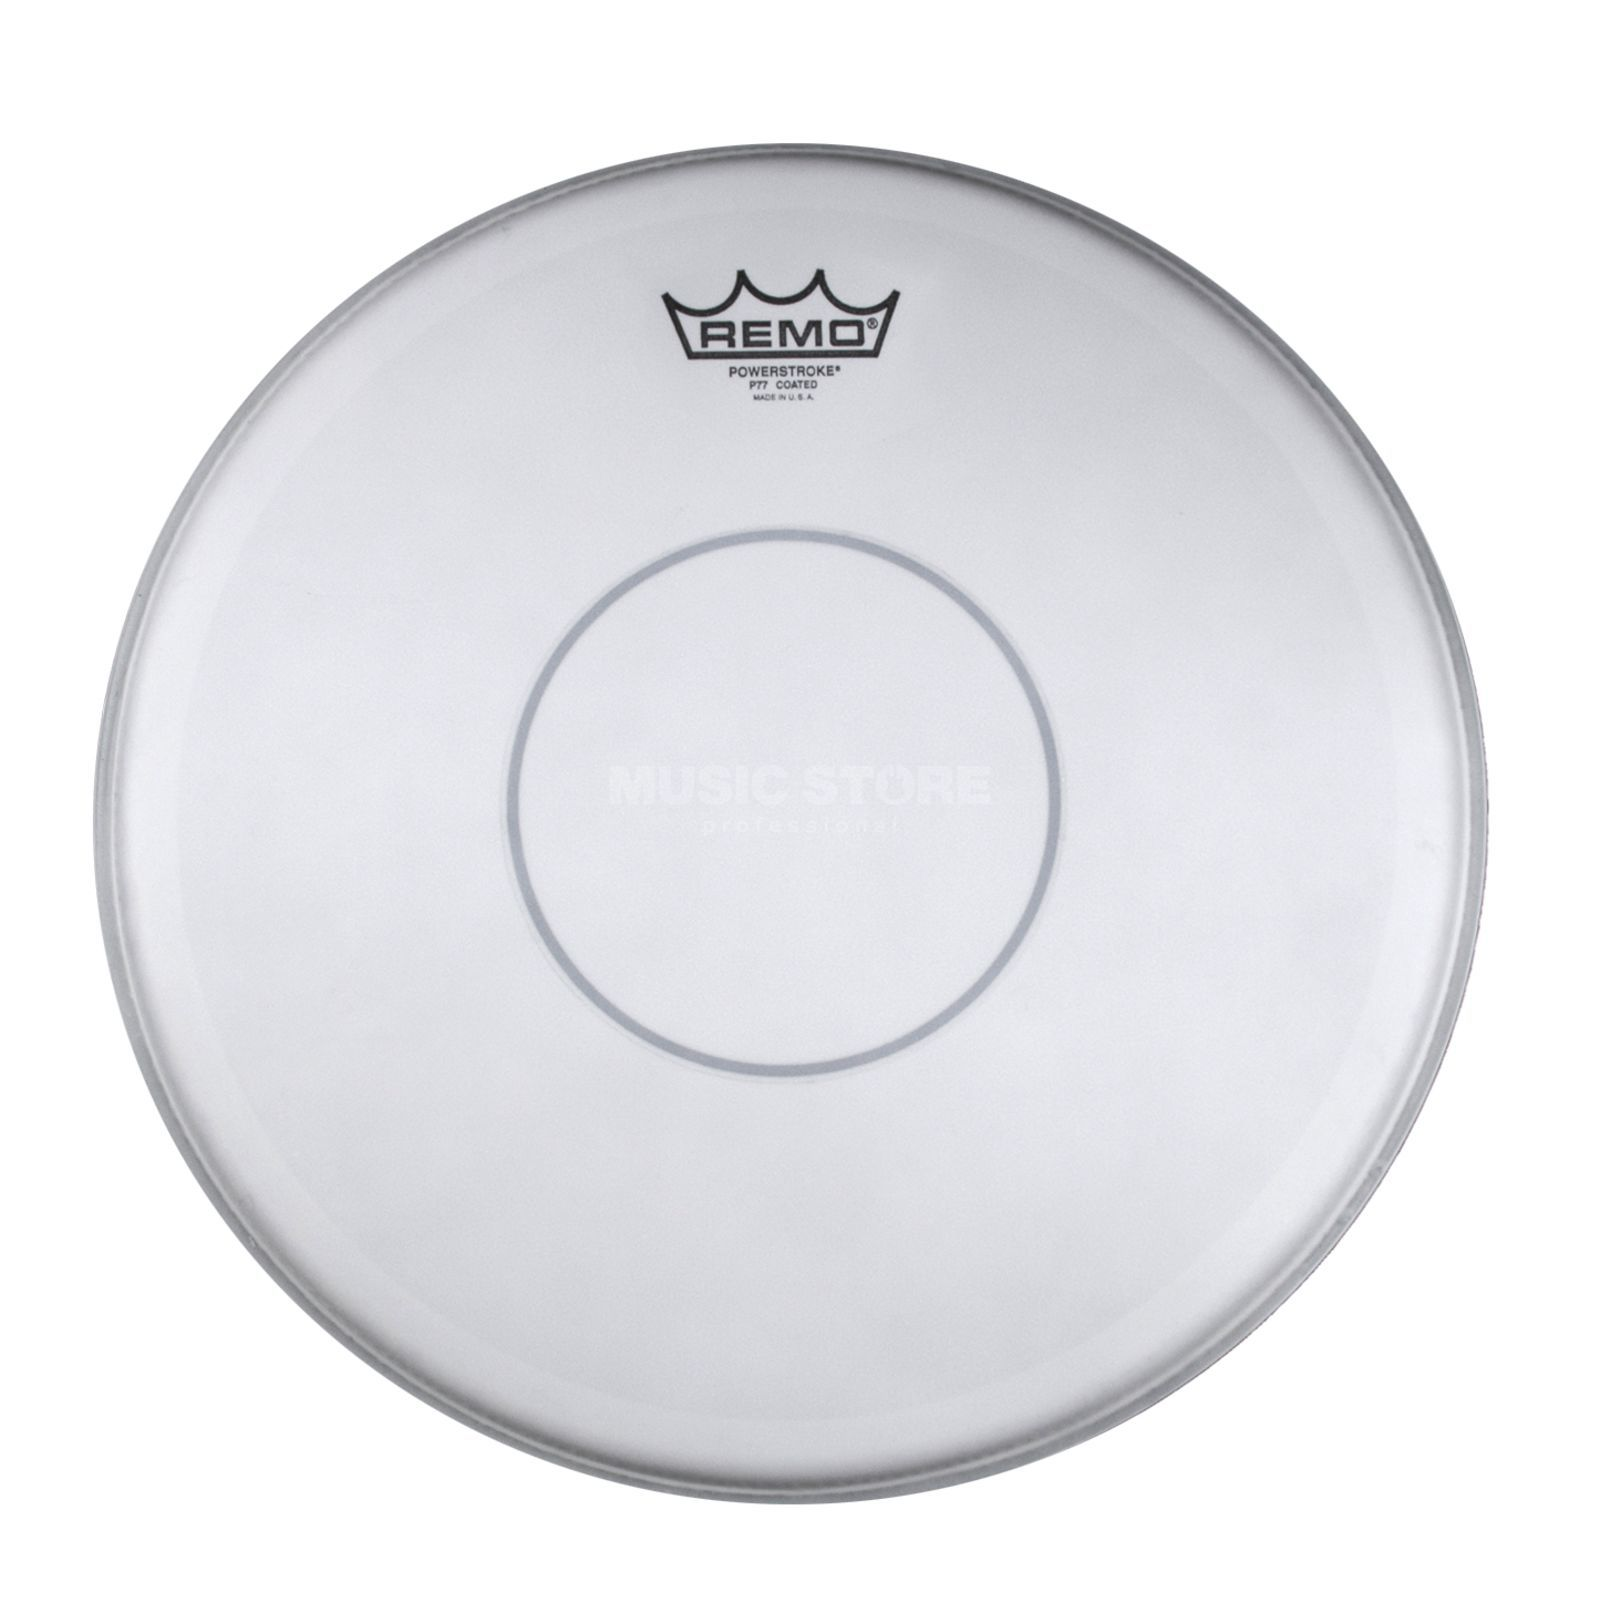 "Remo Powerstroke 77 Coated 12"", Snare Batter Produktbild"